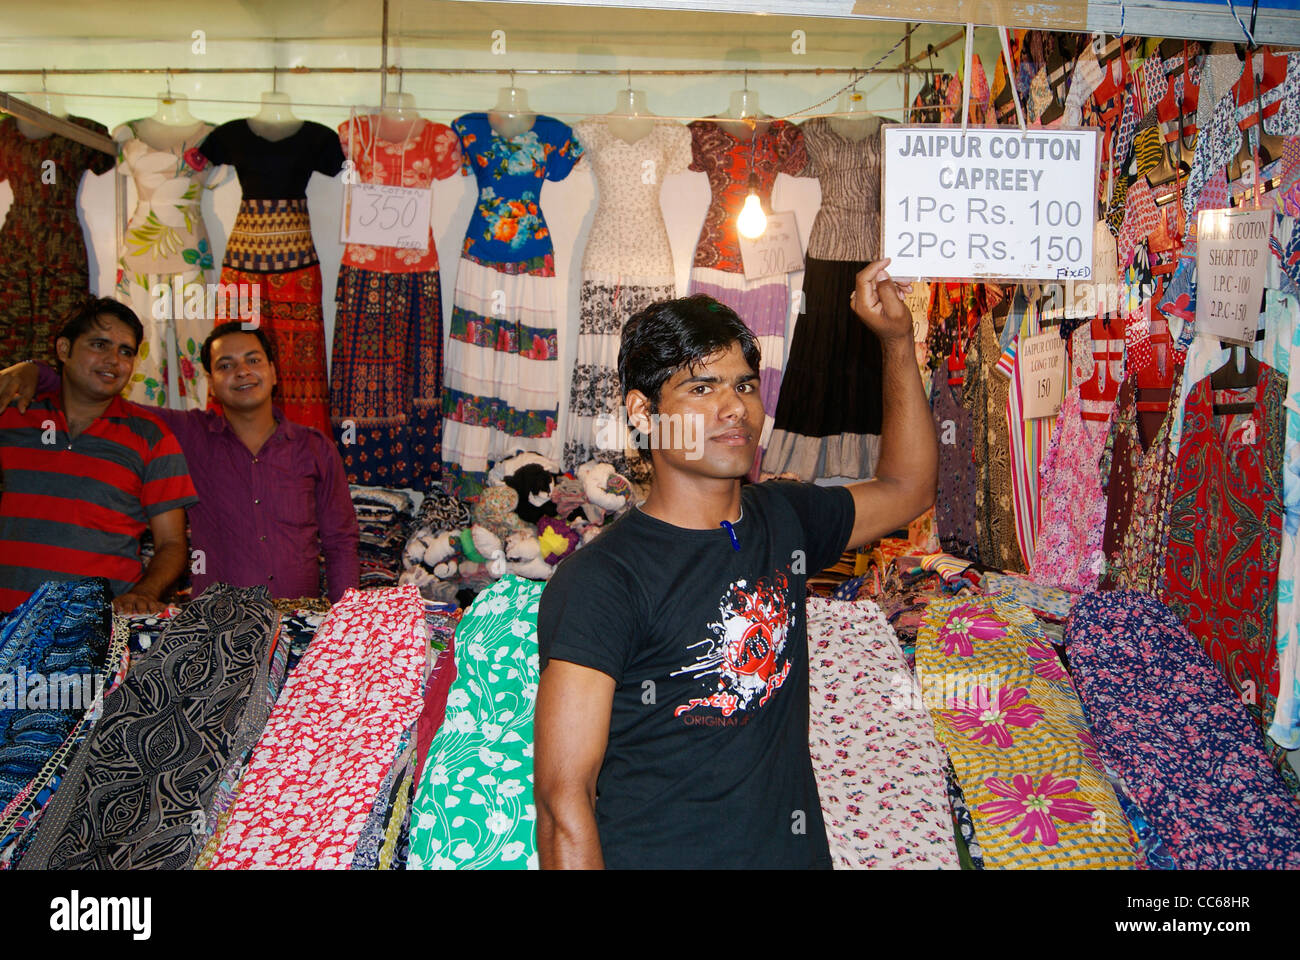 Sales Man in a Cloth shop (Garments Shop) (Exclusive shop for Indian Jaipur cotton capreey ) showing very low price - Stock Image